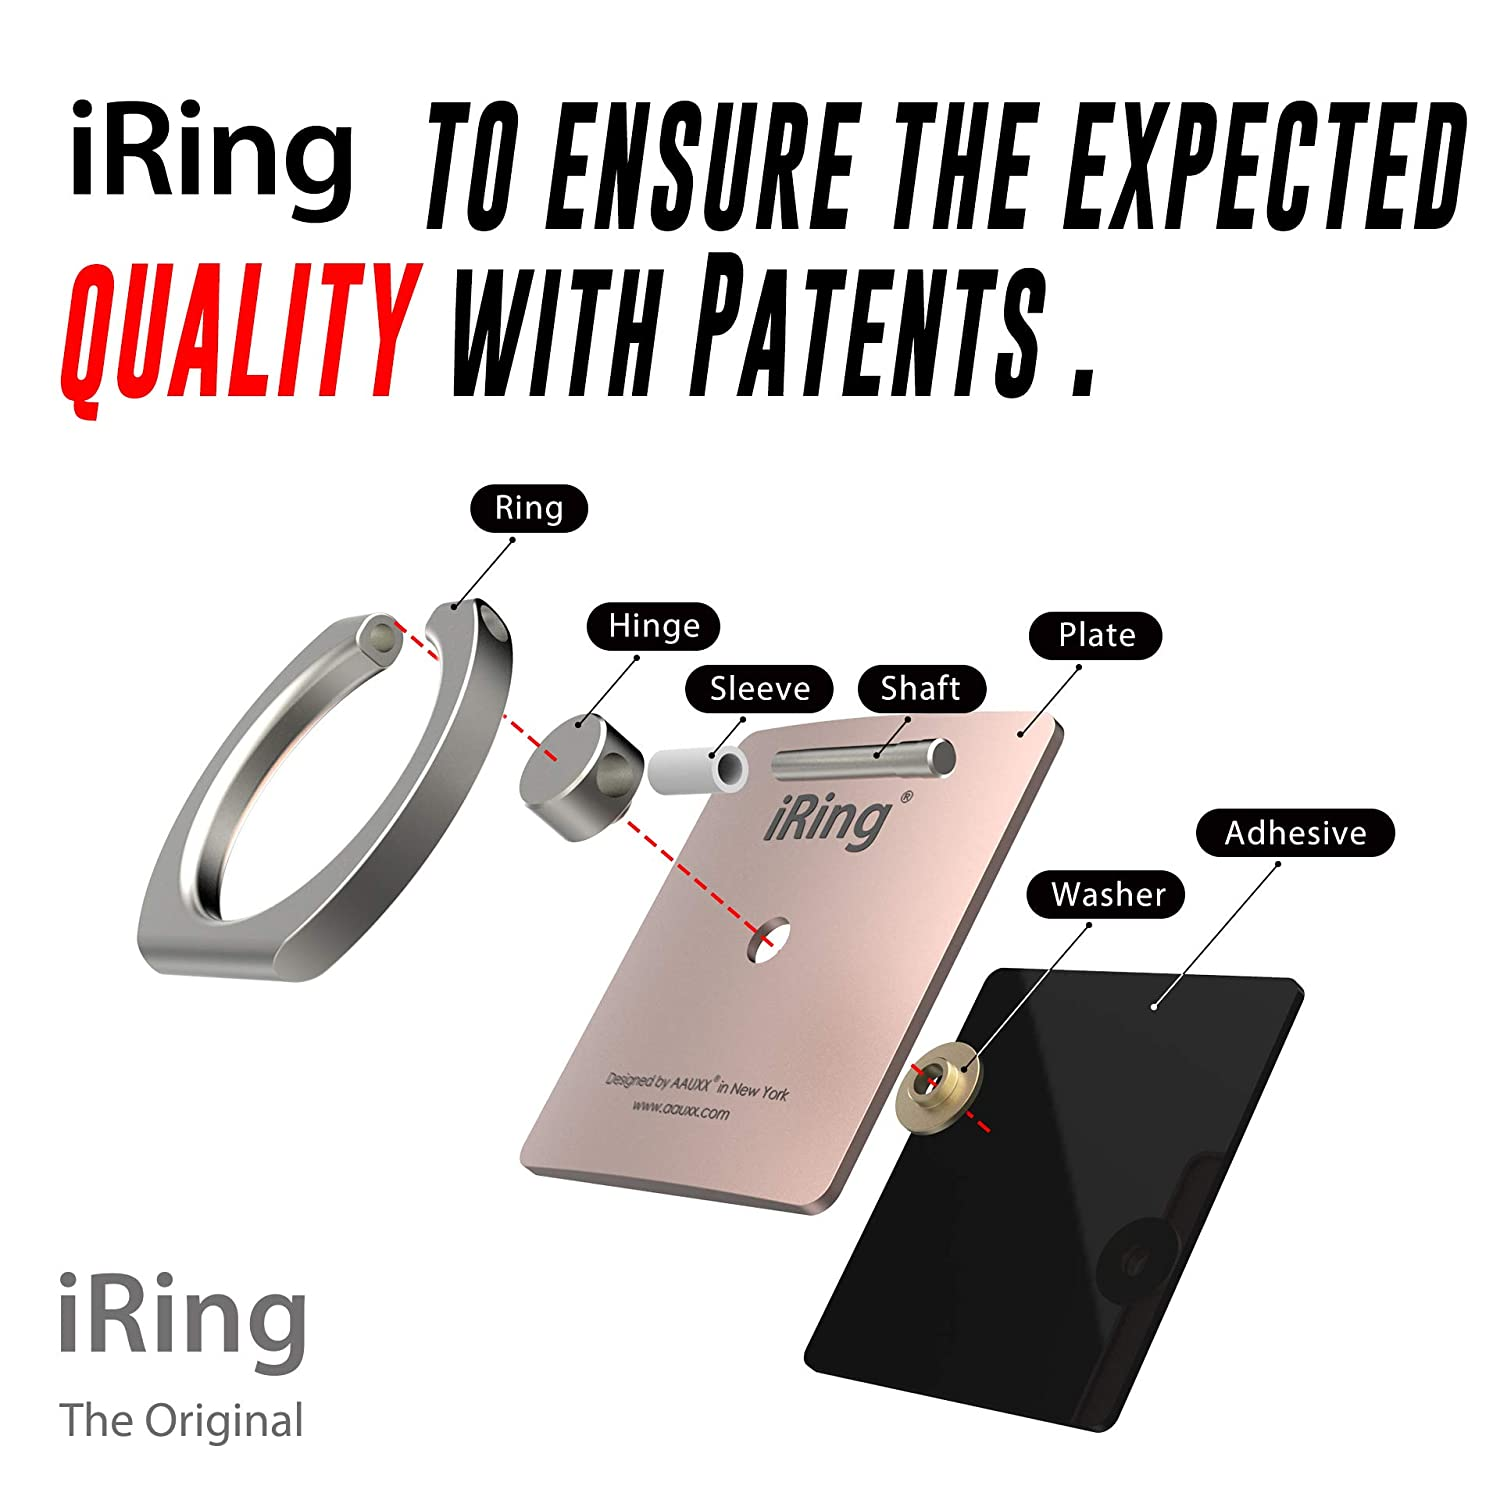 Other Android Smartphones and Tablets. Xs Max Samsung AAUXX iRing with Mount Hook Set Cell Phone Grip and Finger Holder for car and Office iPhone 8 and 8 Plus Ring Stand Accessory for iPhone Xs